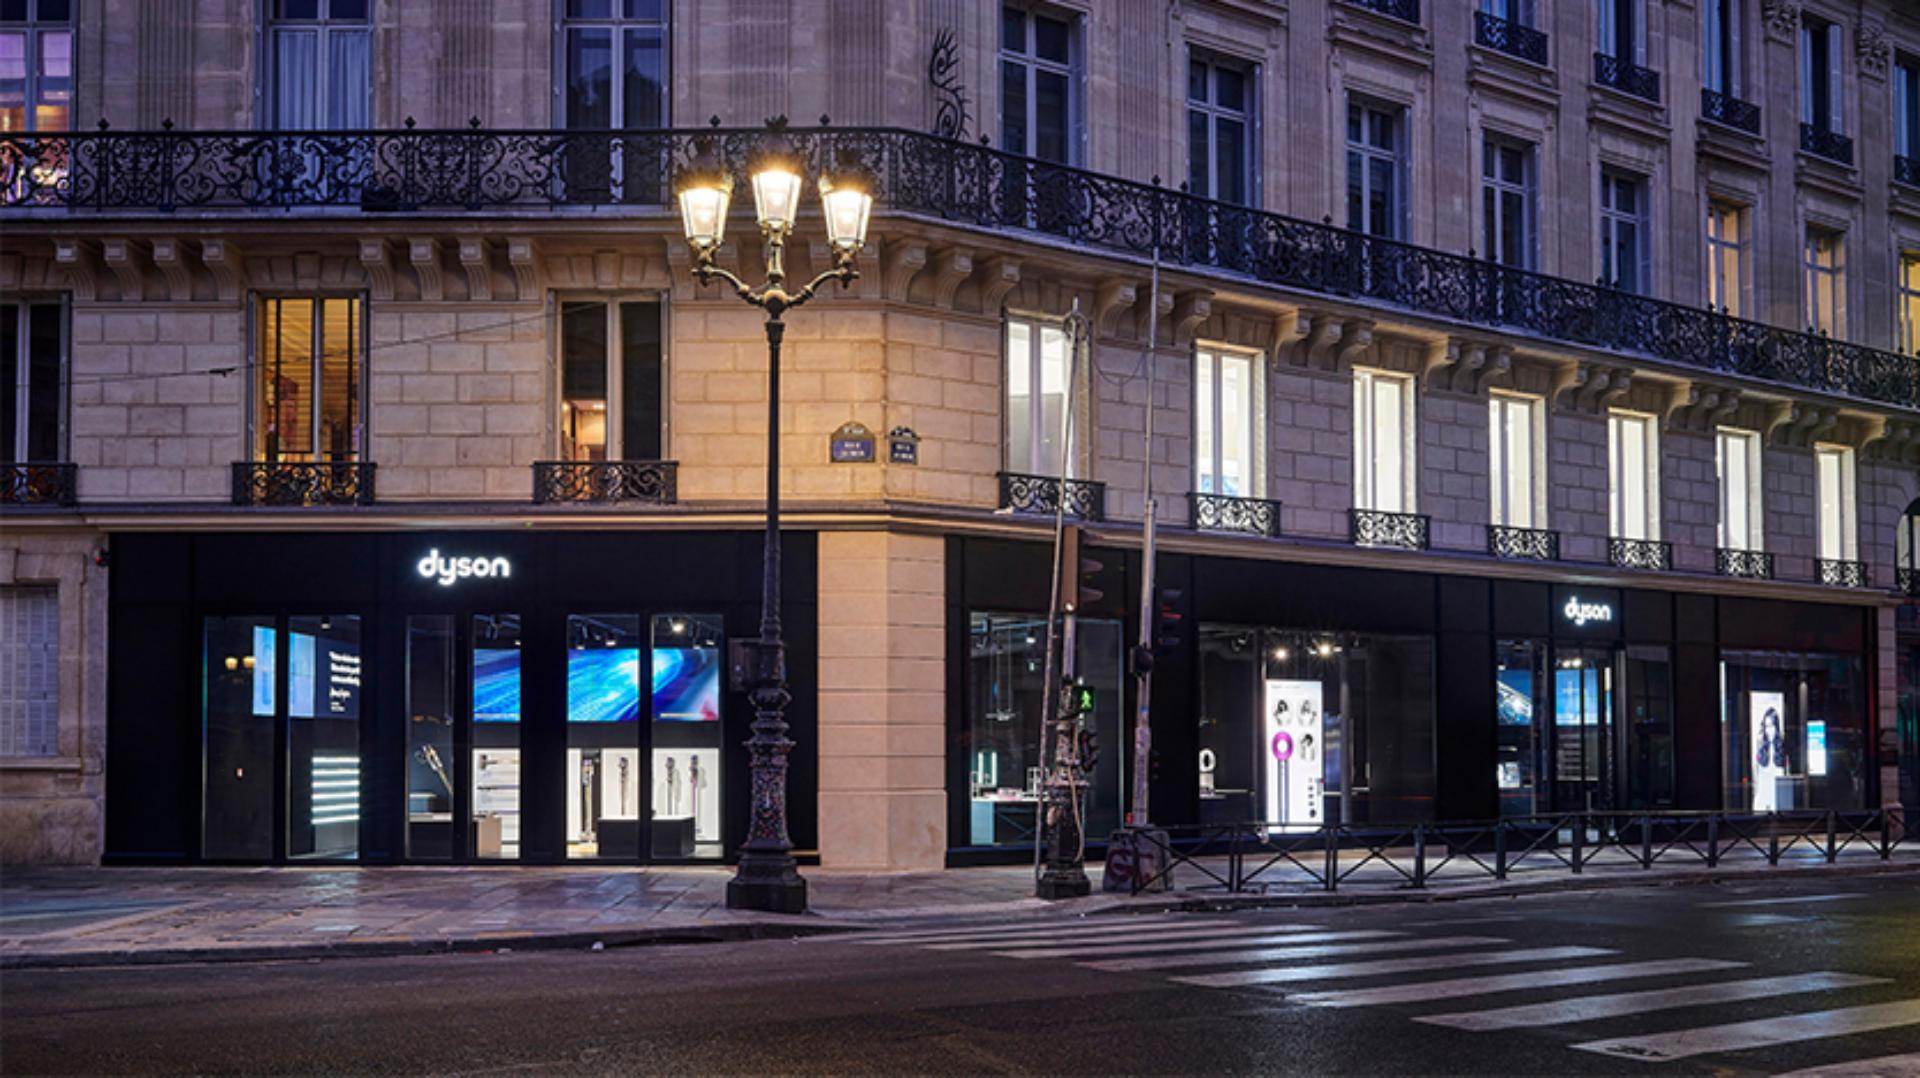 Exterior view of Dyson Demo Store in Paris